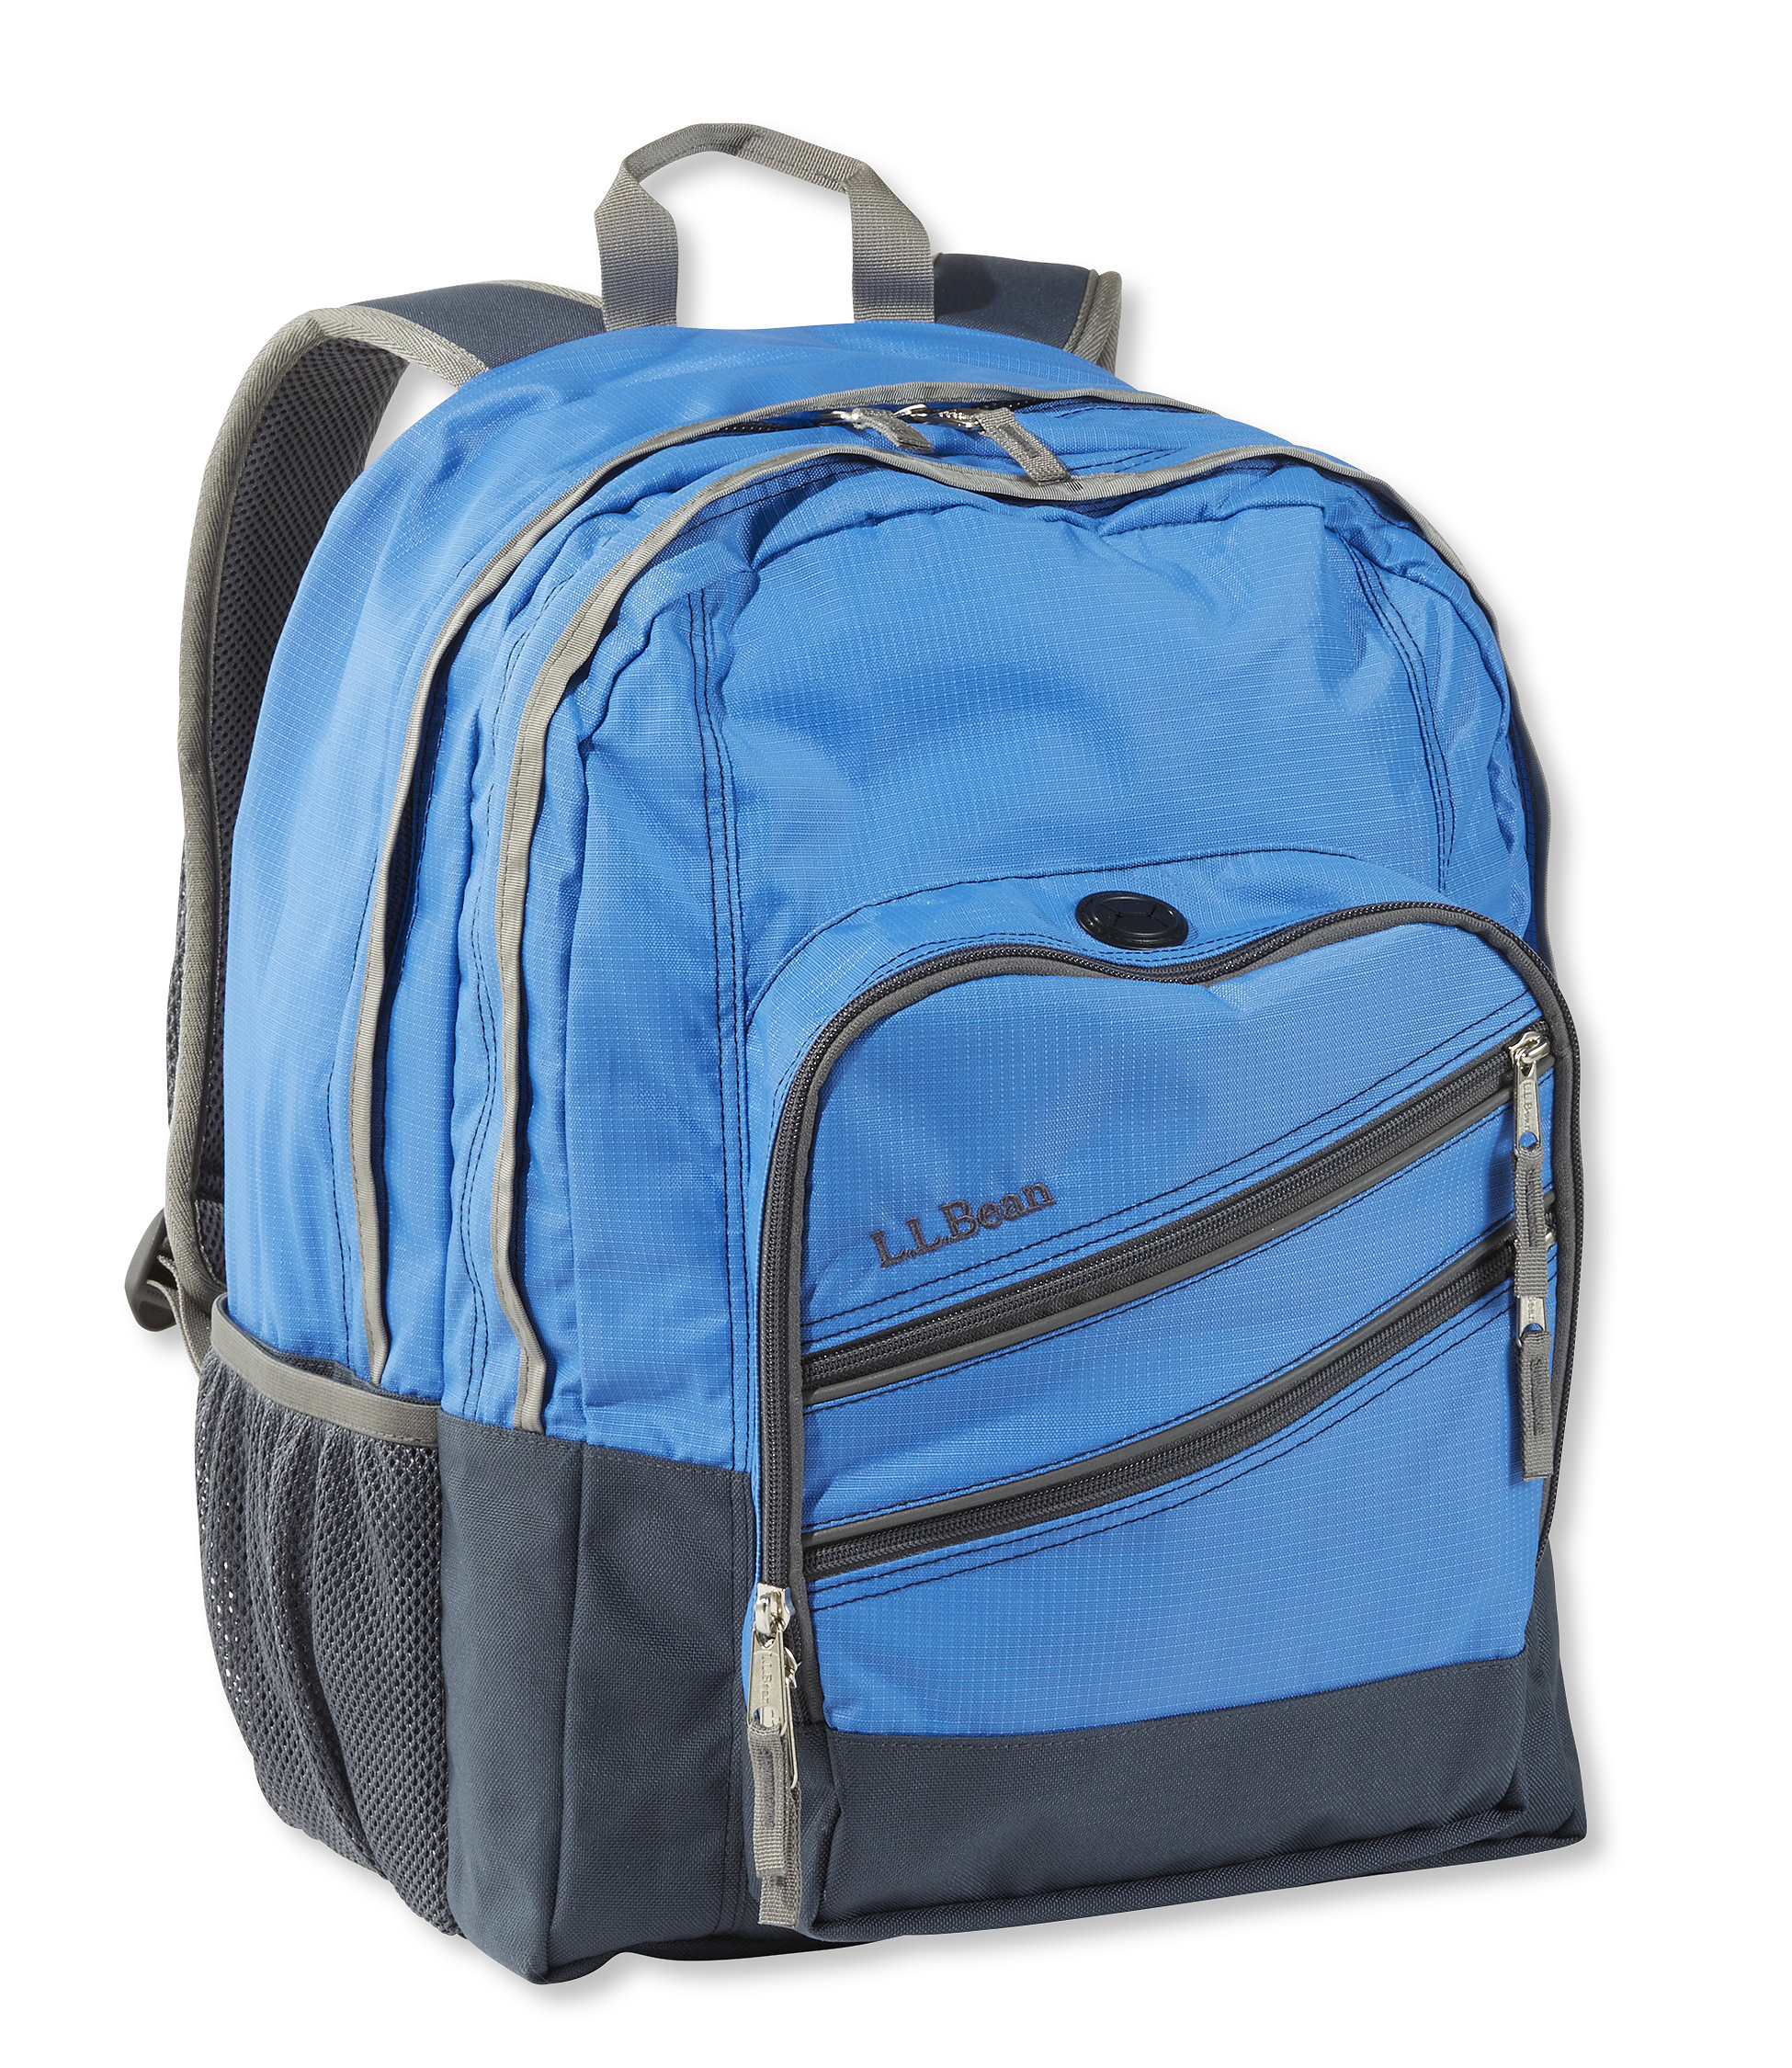 L.L.Bean Super Deluxe Kids Backpack